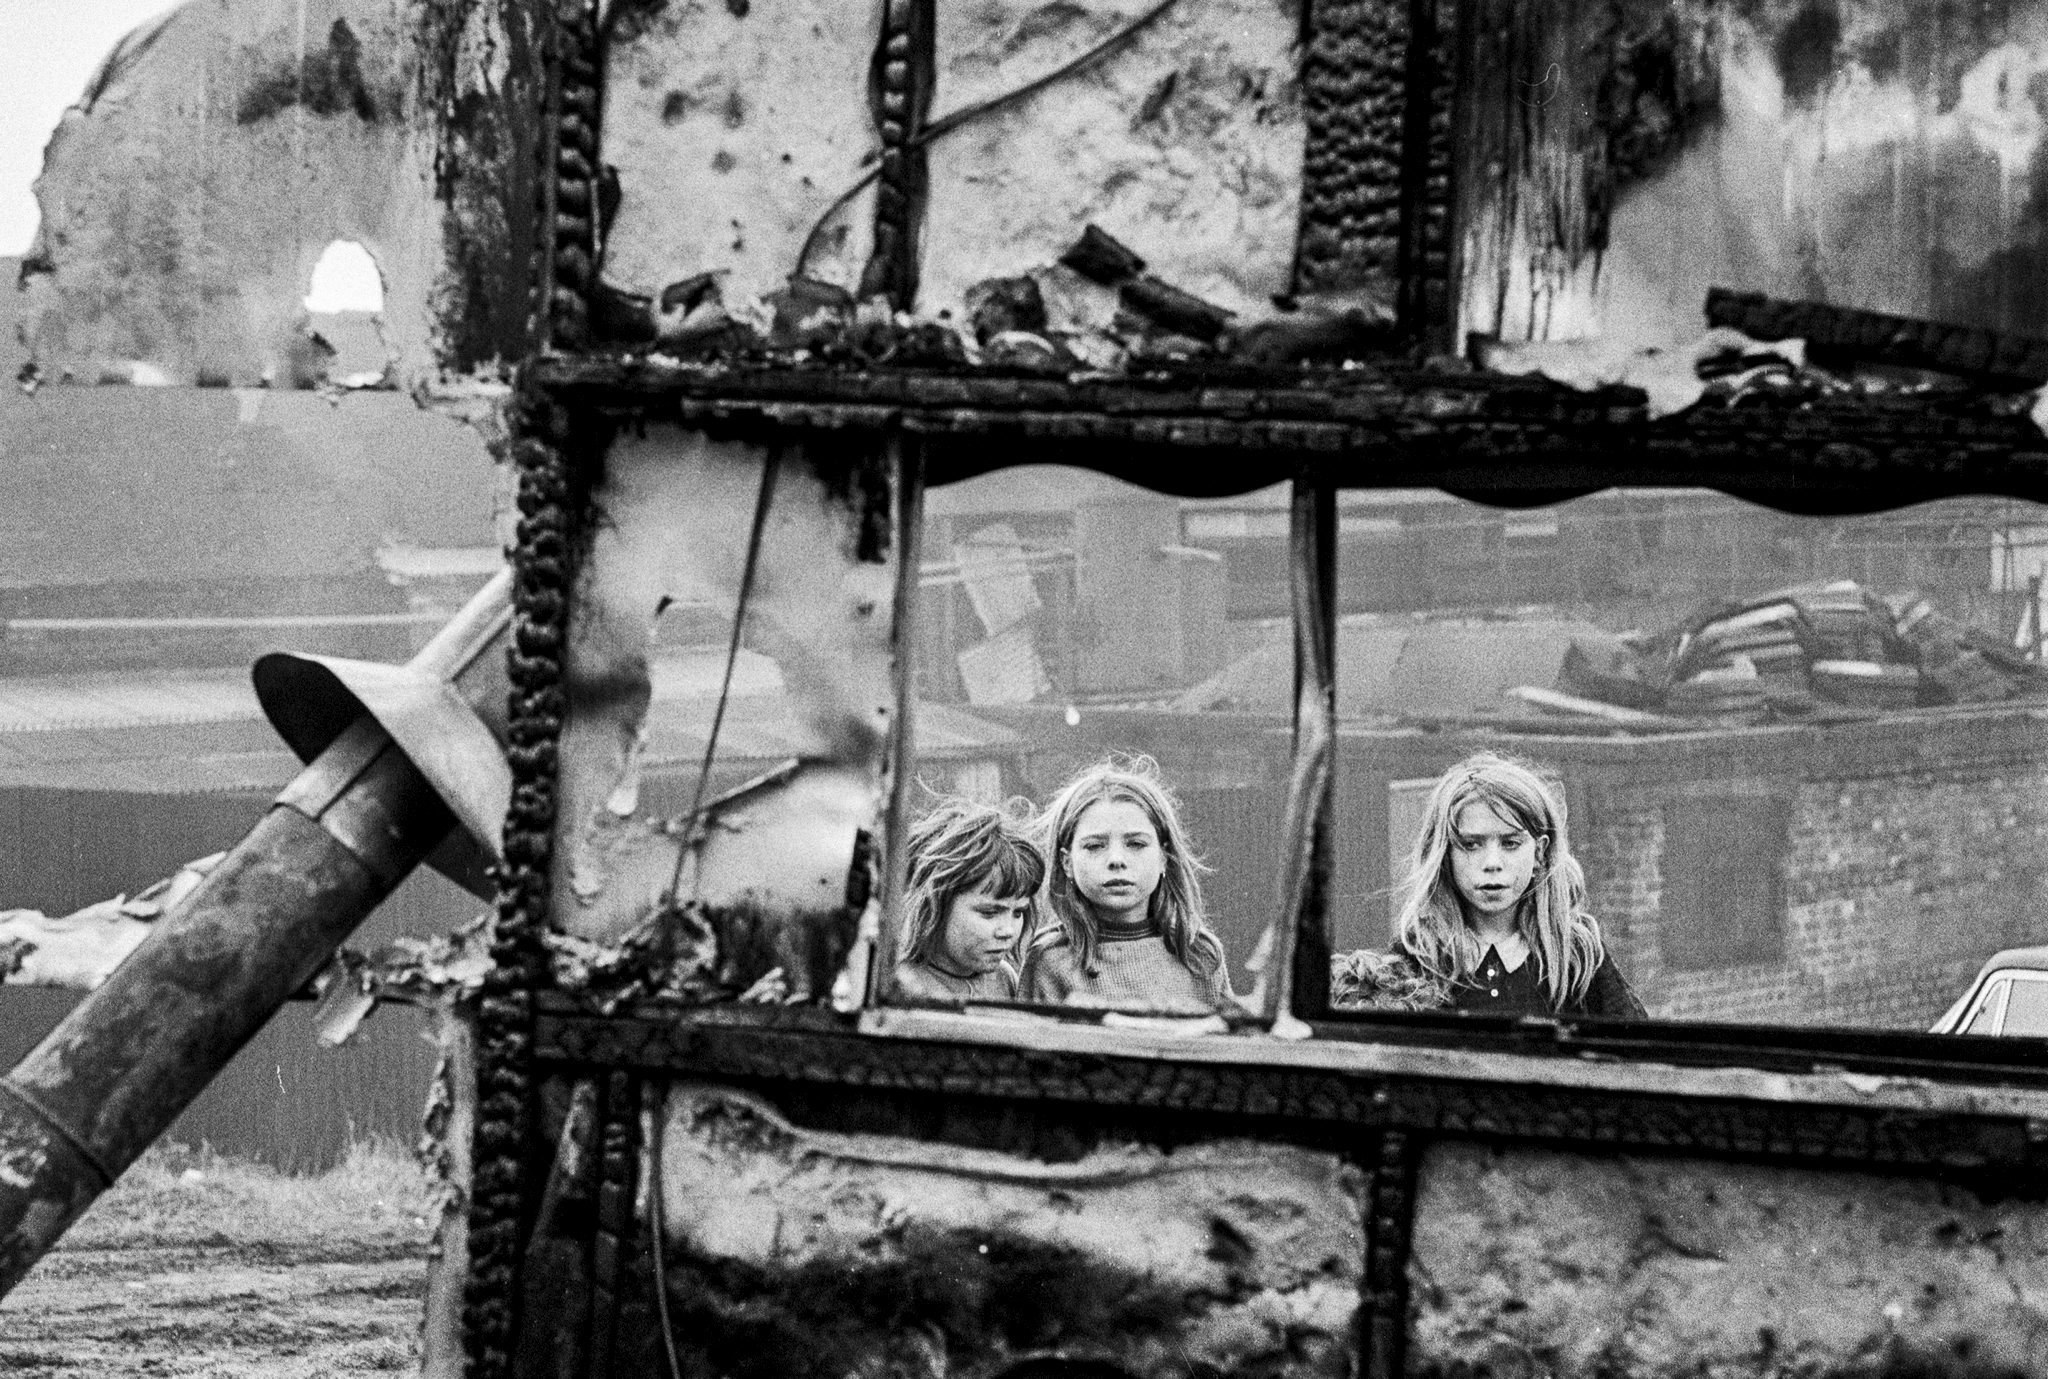 Gypsy Children, Burned-Out Tram, early '60s